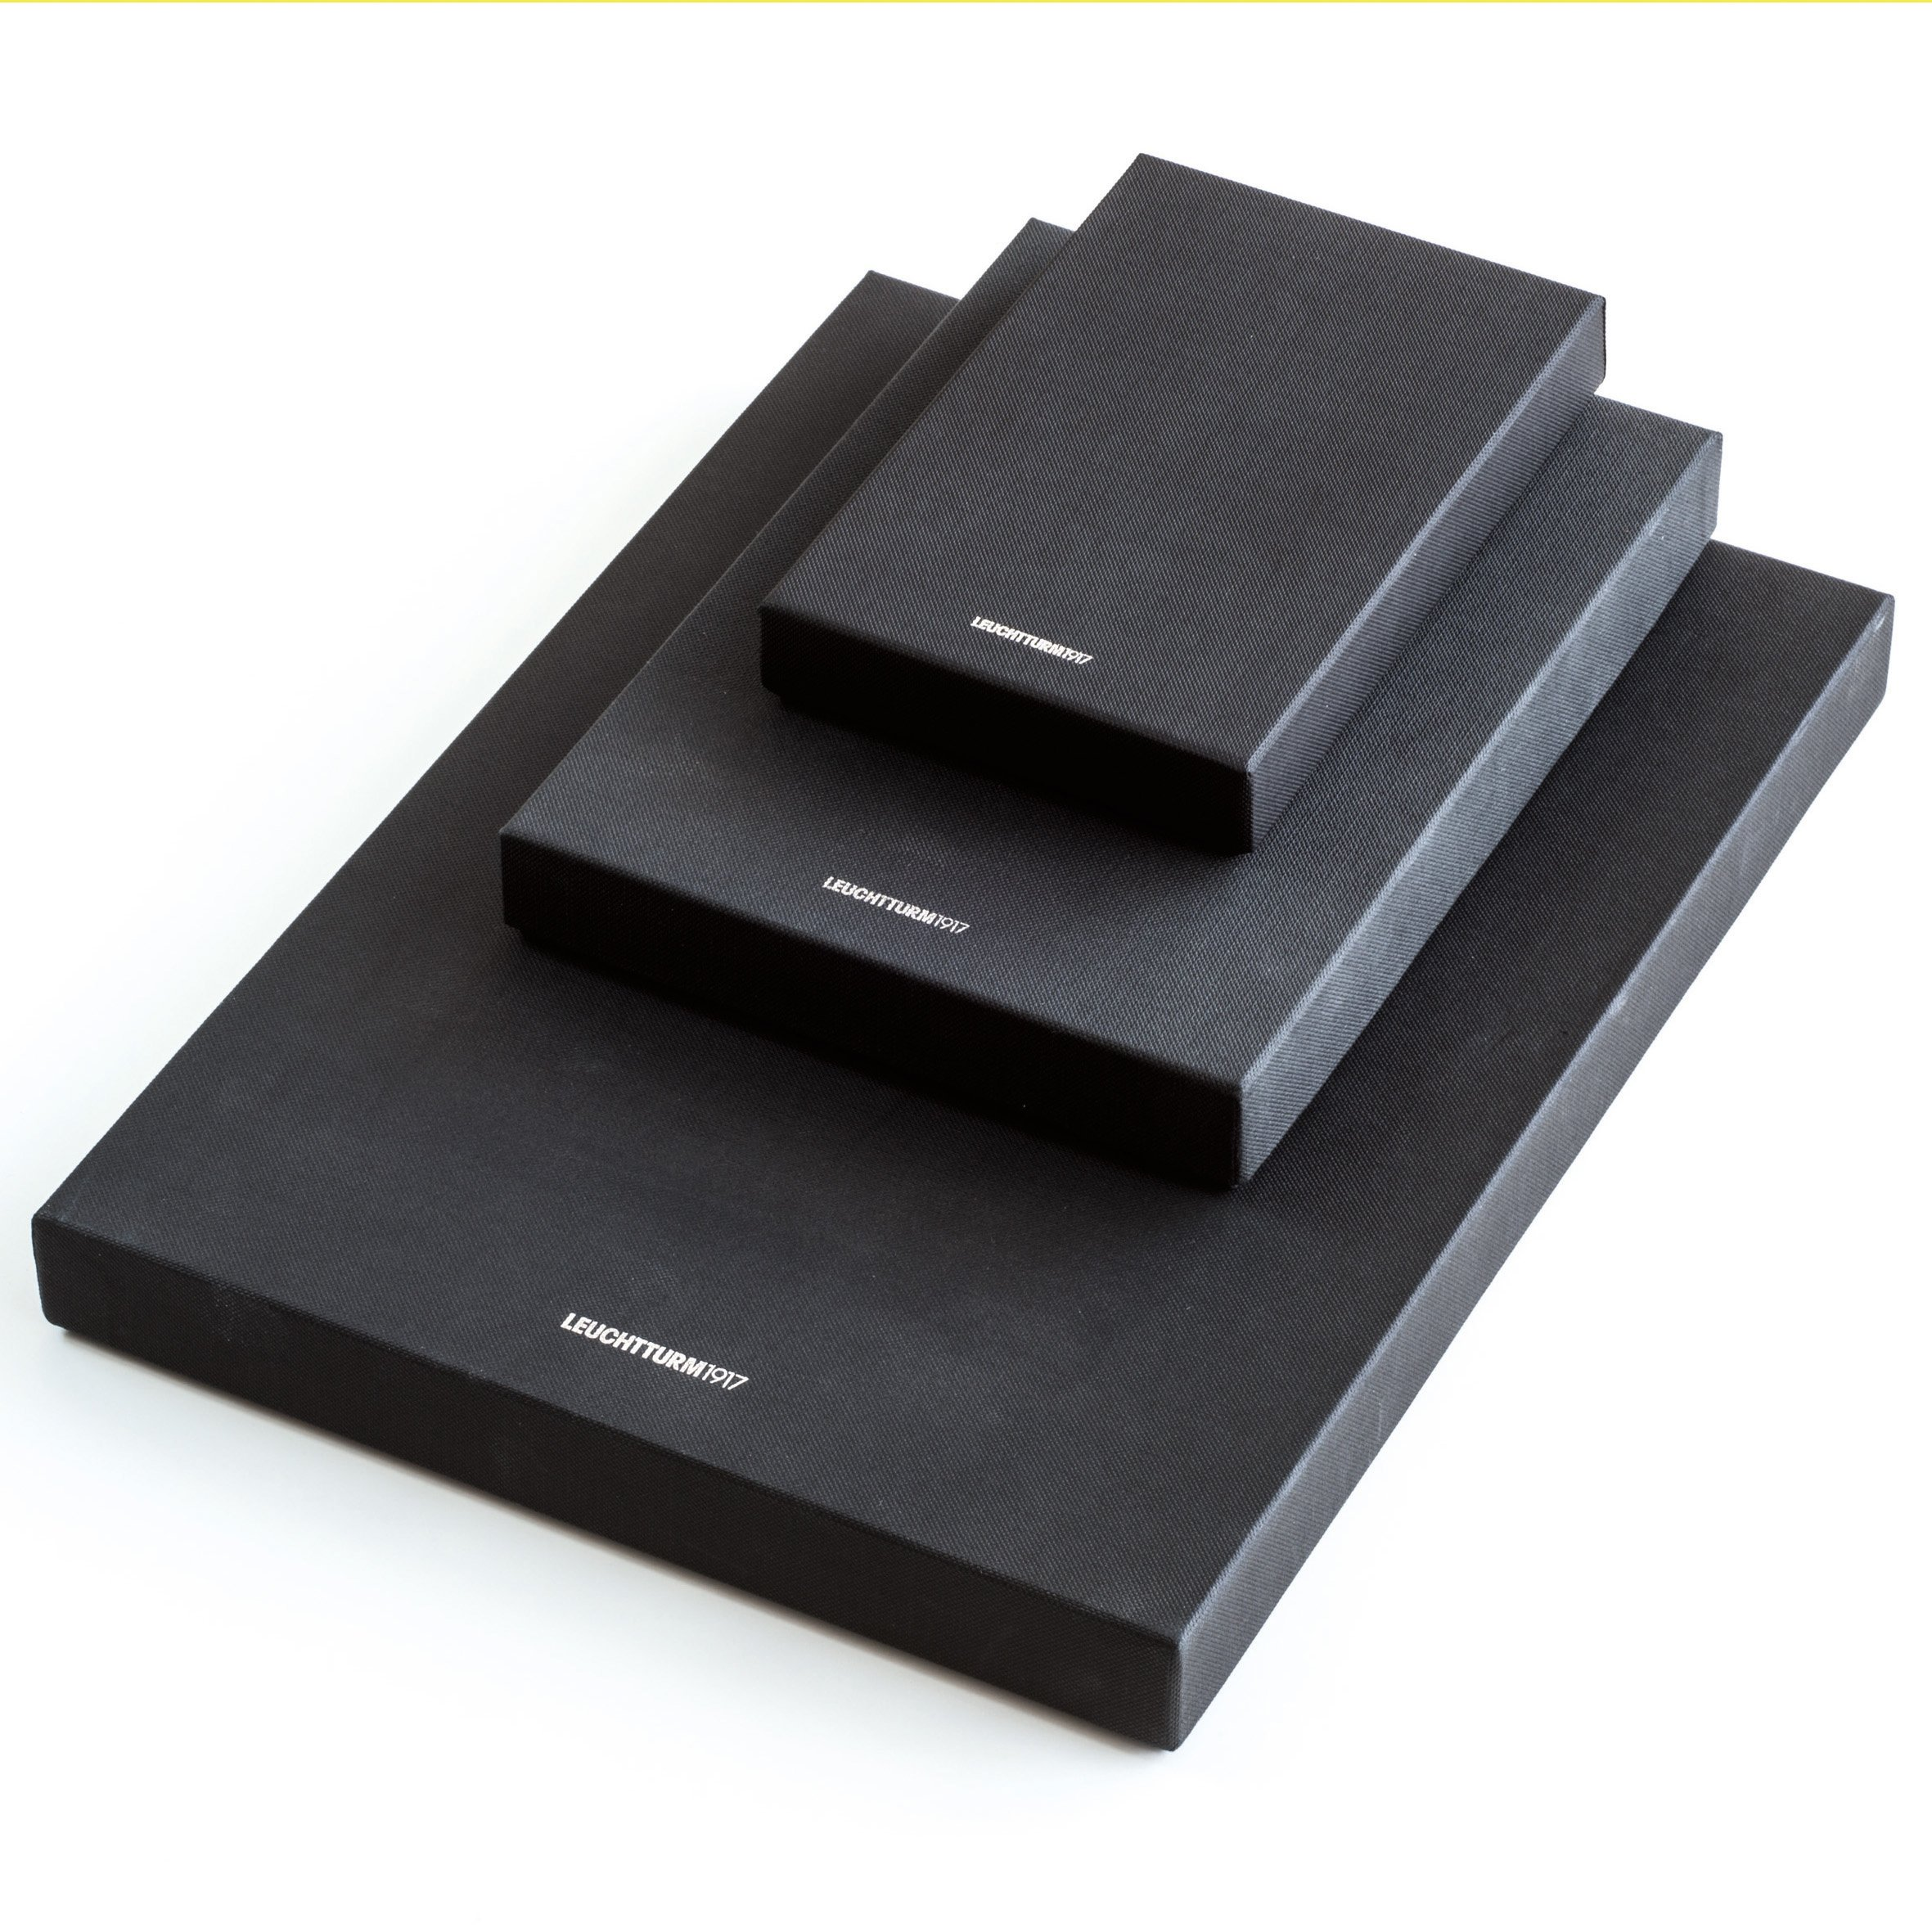 Leuchtturm1917 A4 Plus Master Genuine Leather Lined Notebook - Black